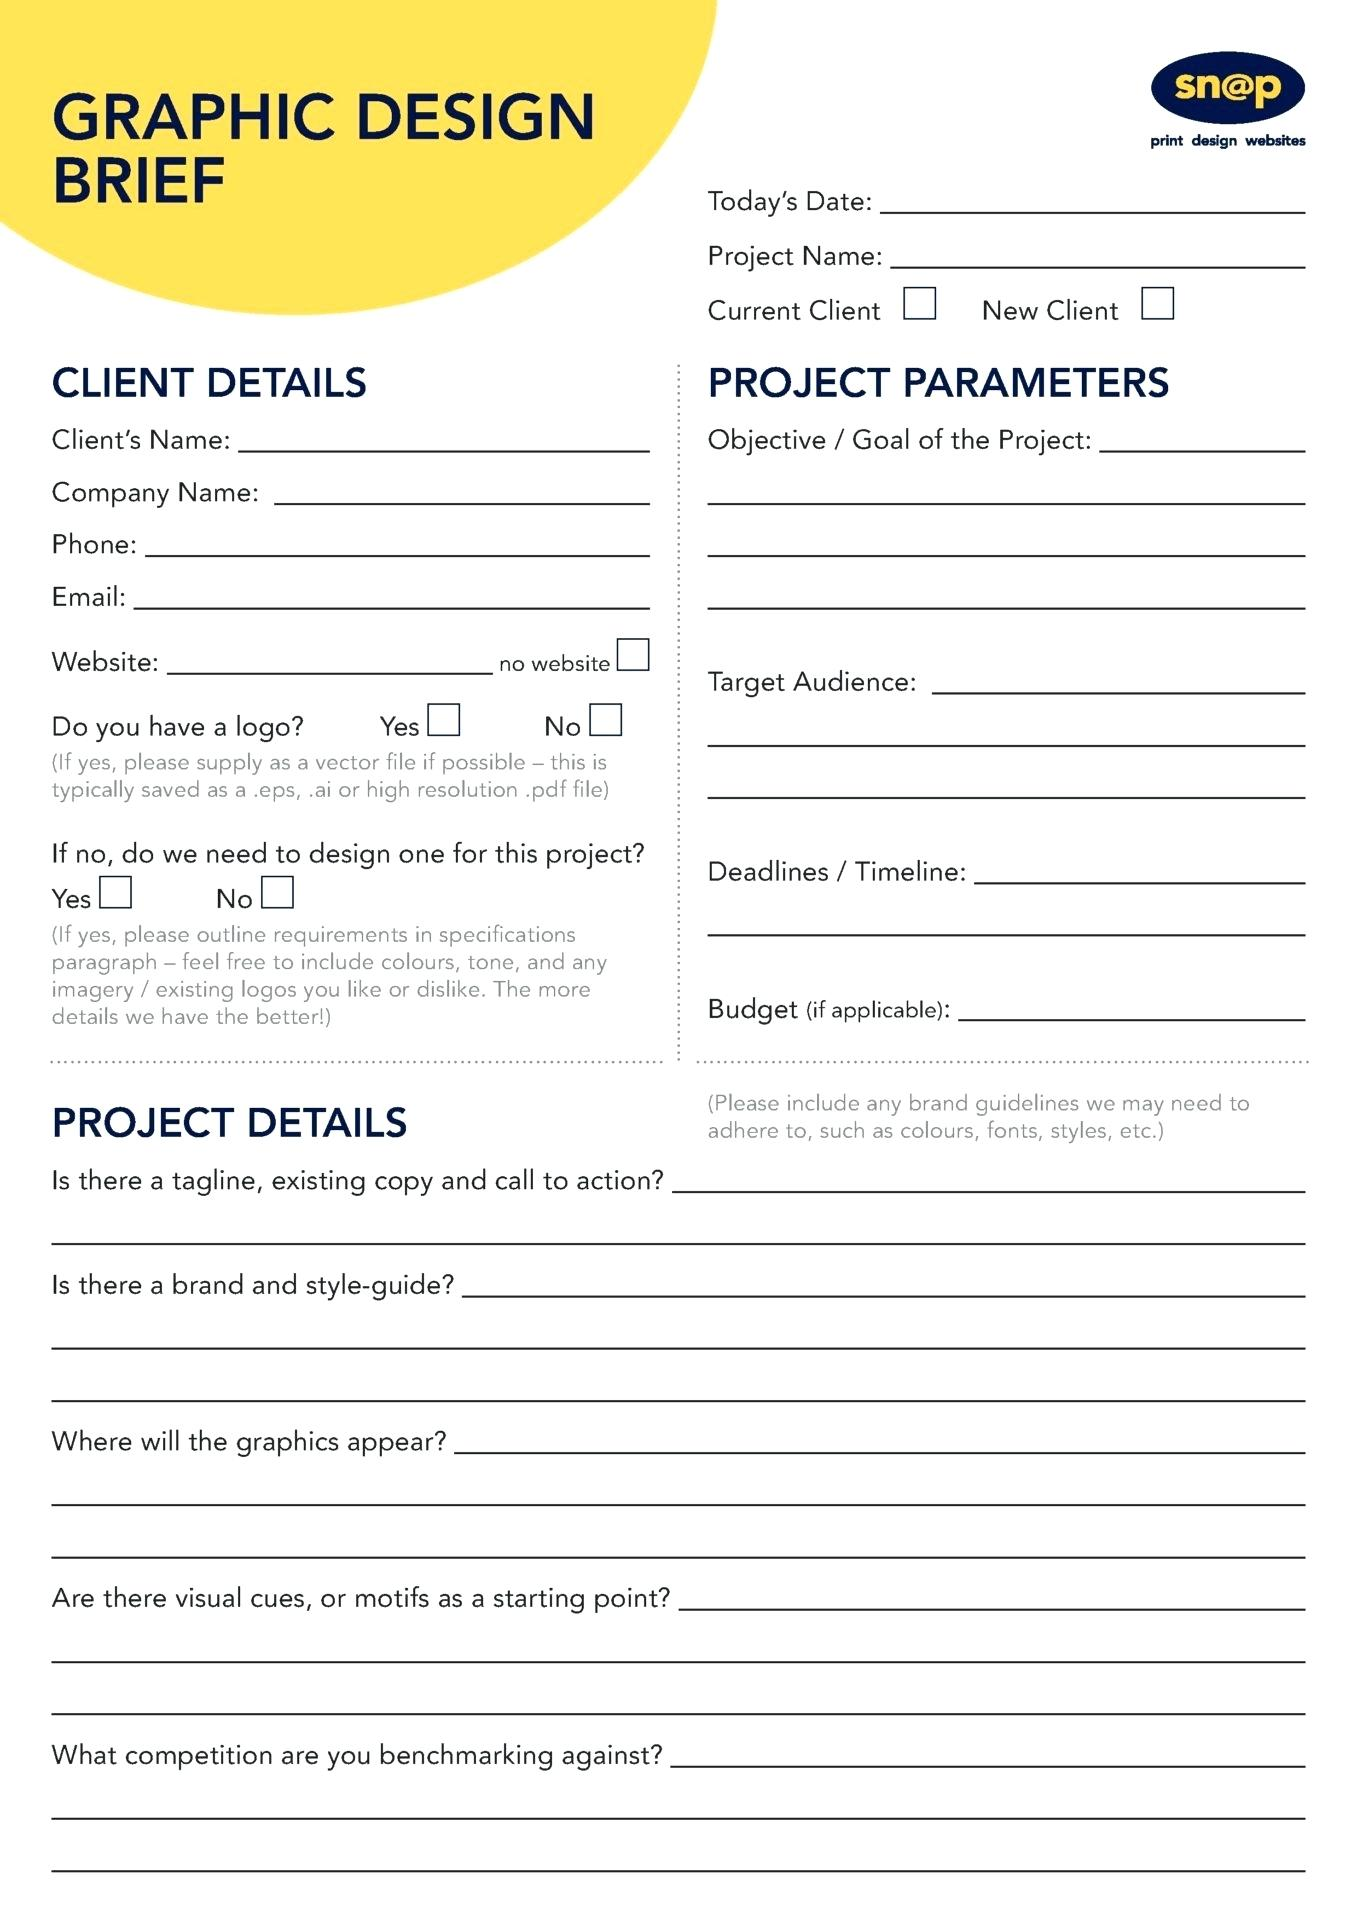 Graphic Design Brief Template Sample